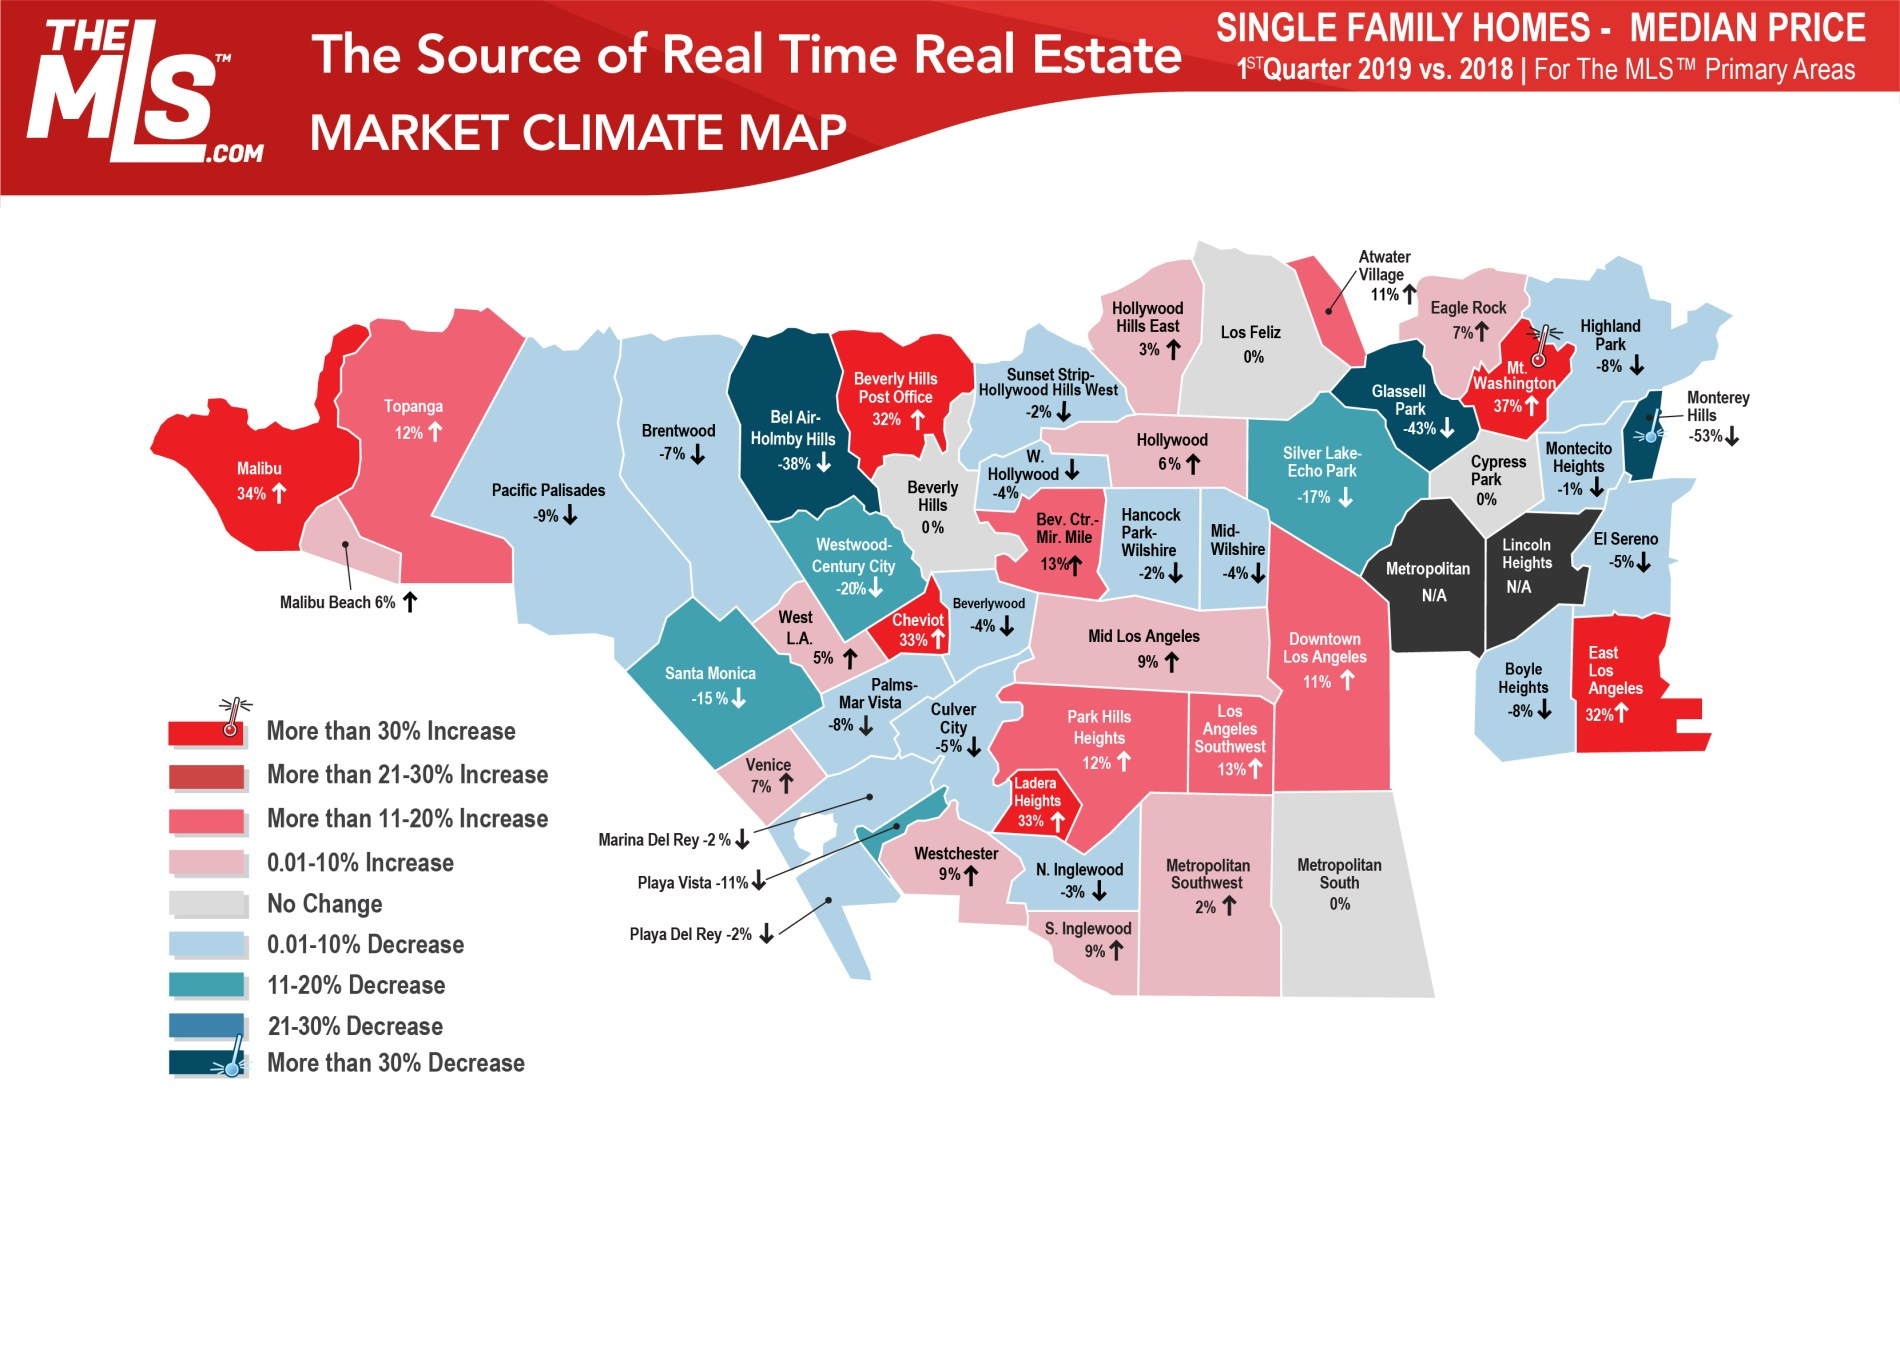 los angeles real estate market climate map single family homes 2019 first quarter